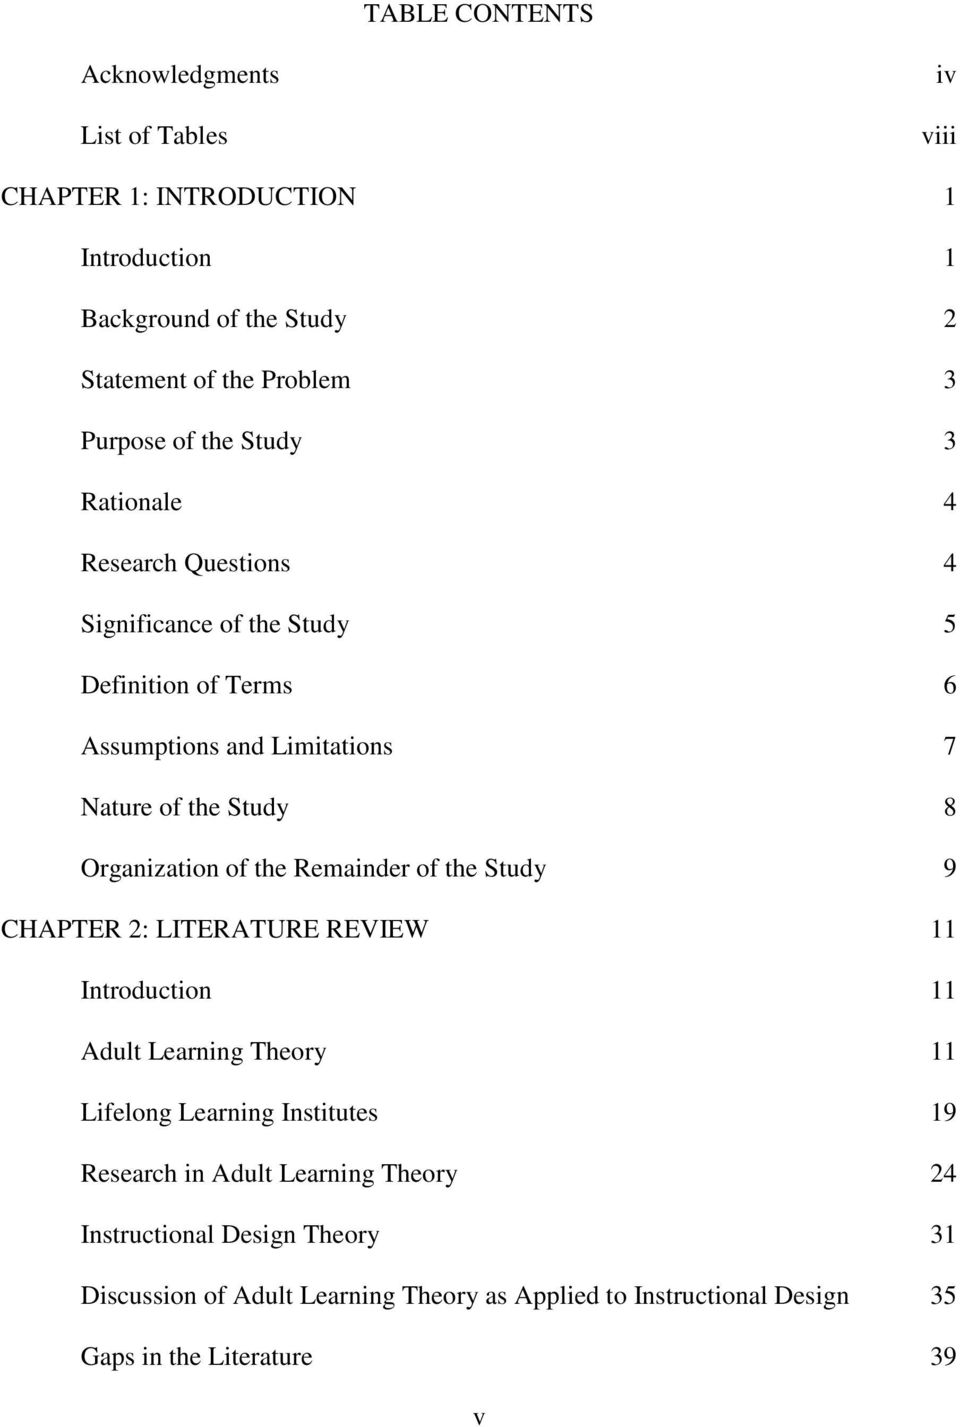 Organization of the Remainder of the Study 9 CHAPTER 2: LITERATURE REVIEW 11 Introduction 11 Adult Learning Theory 11 Lifelong Learning Institutes 19